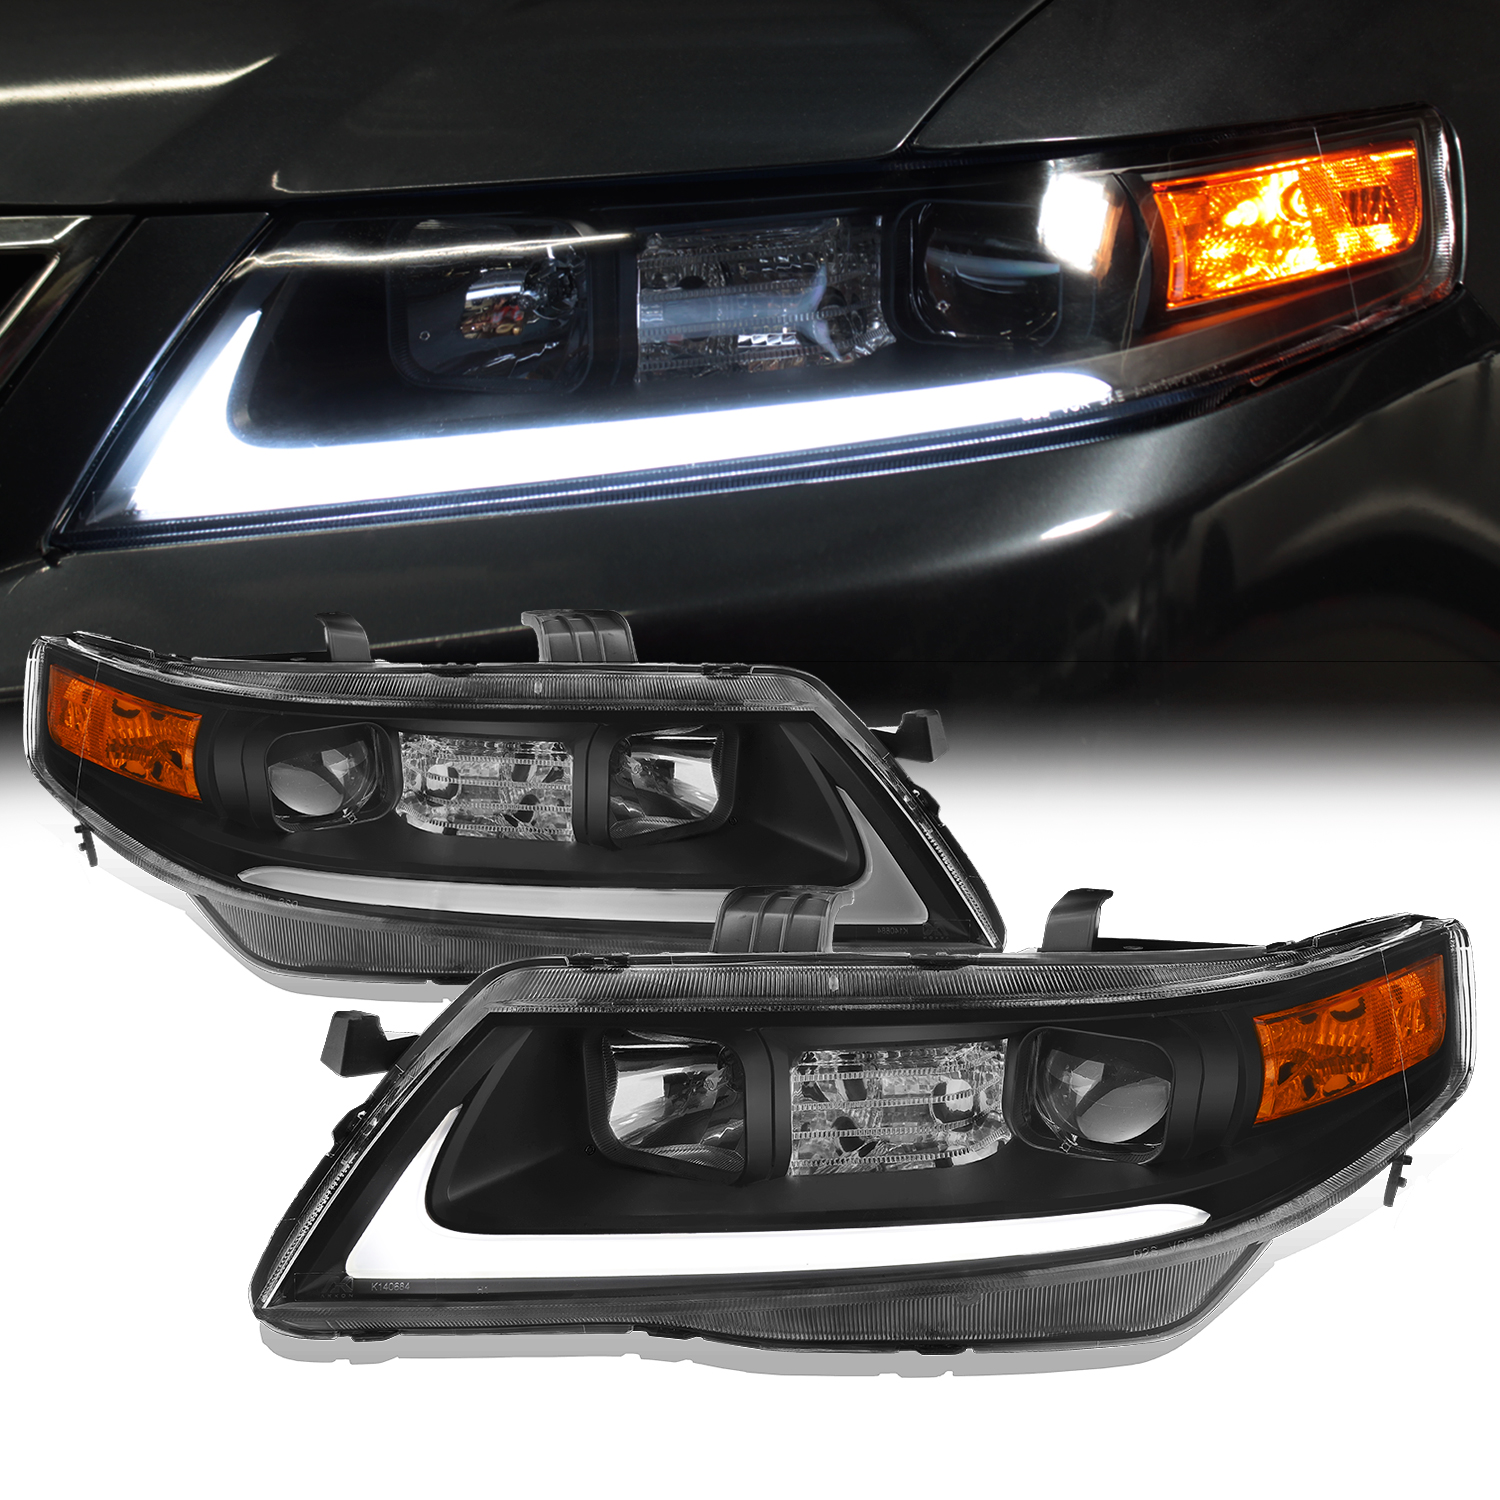 [Black] Fits 2004 2005 2006 2007 2008 Acura TSX LED Bar